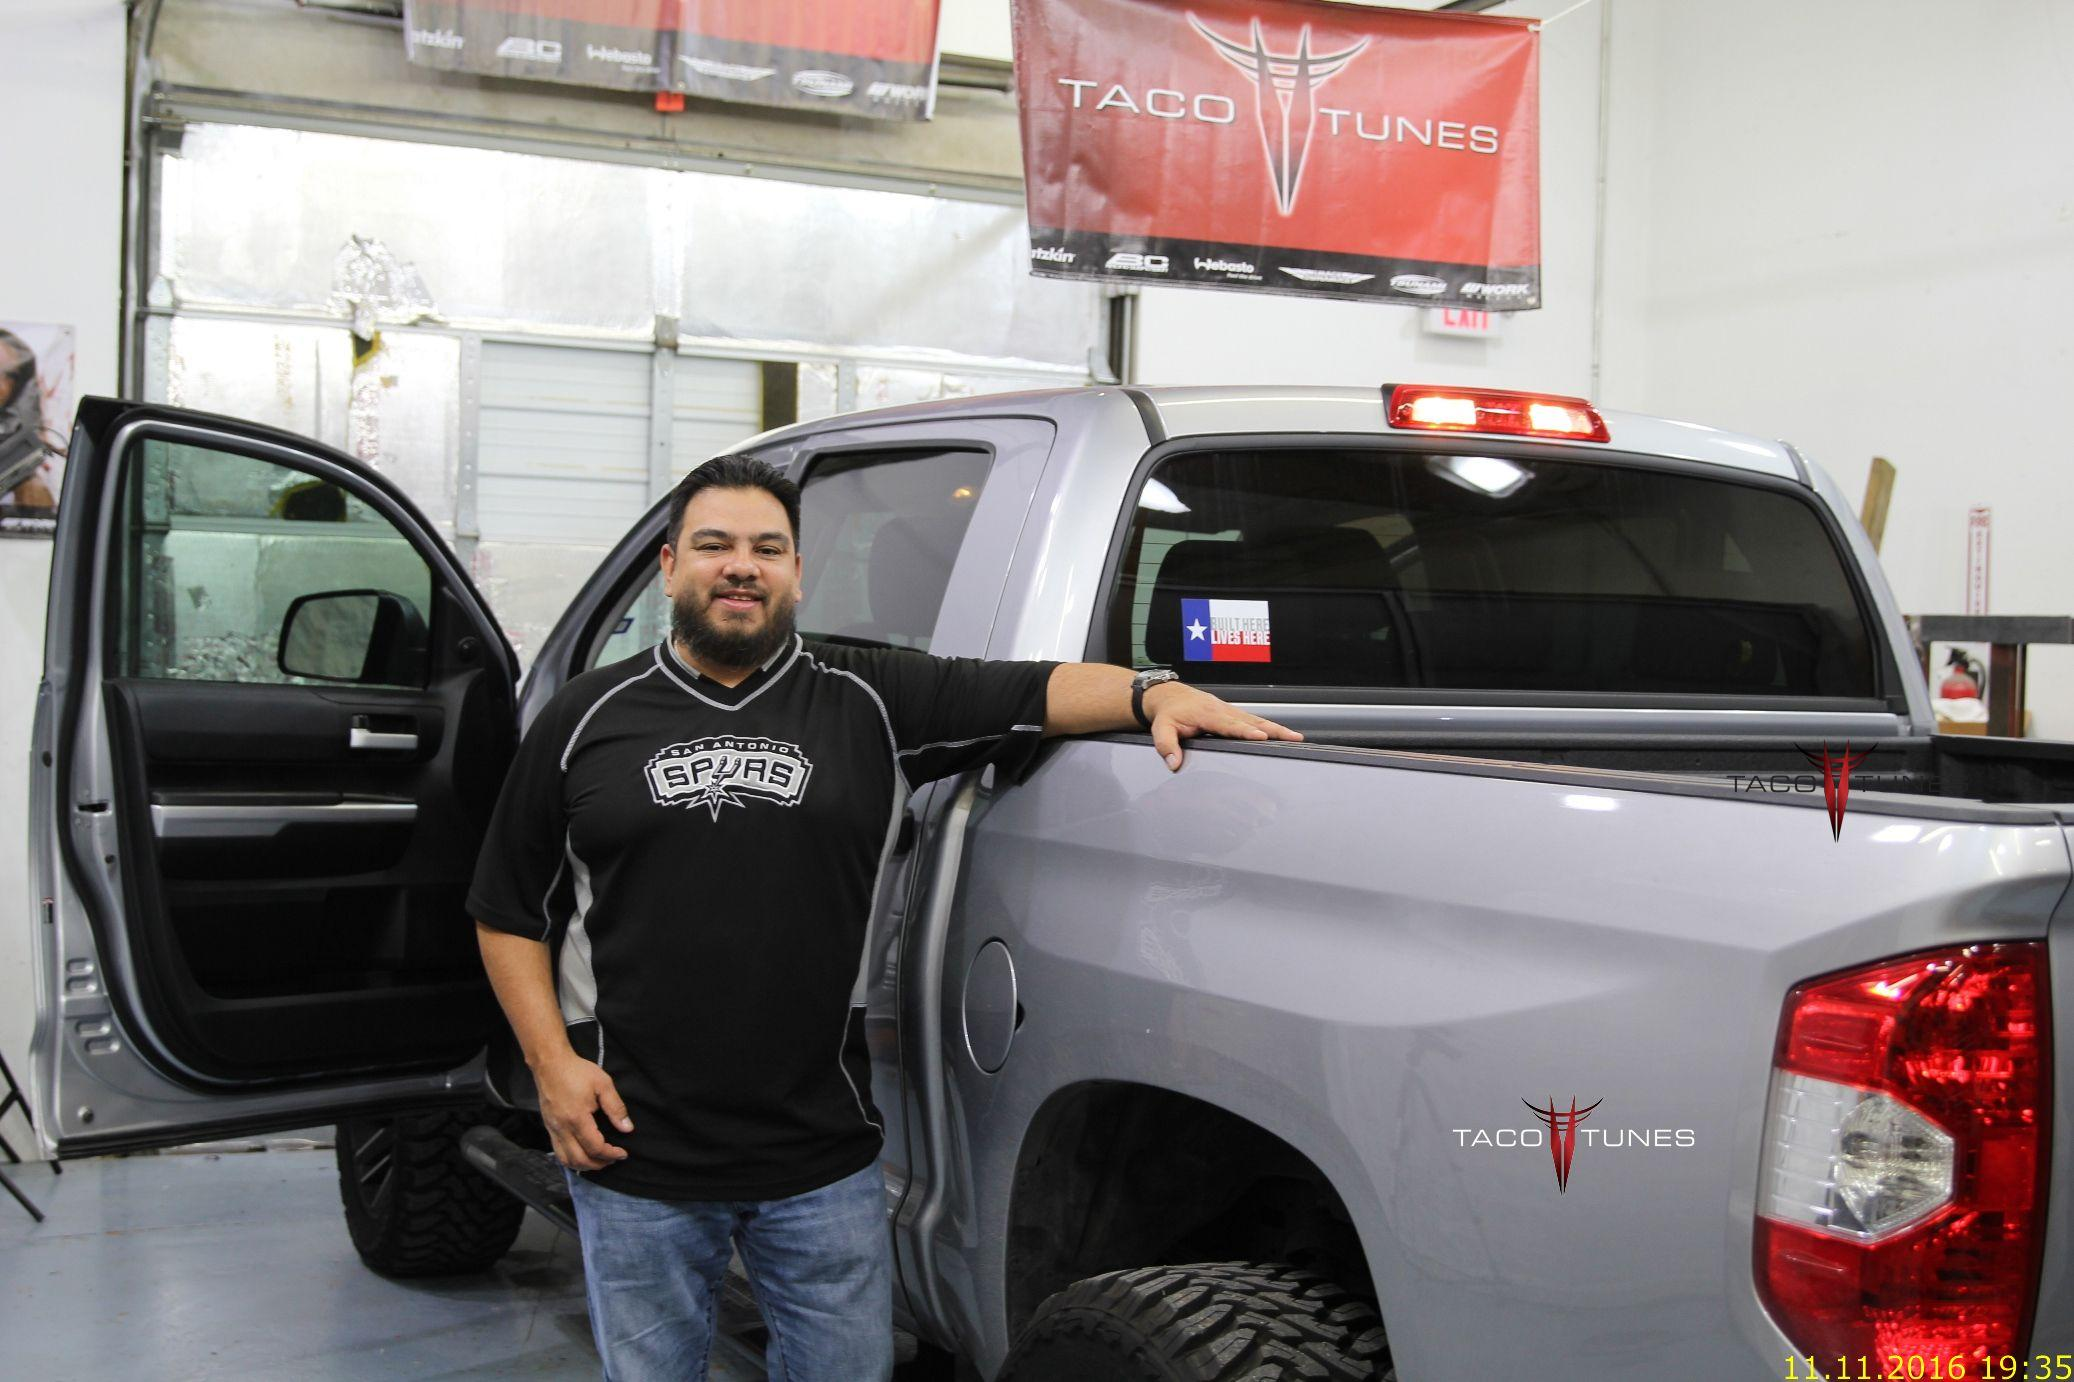 Toyota Tundra Crewmax Audio Stereo System Upgrade Options